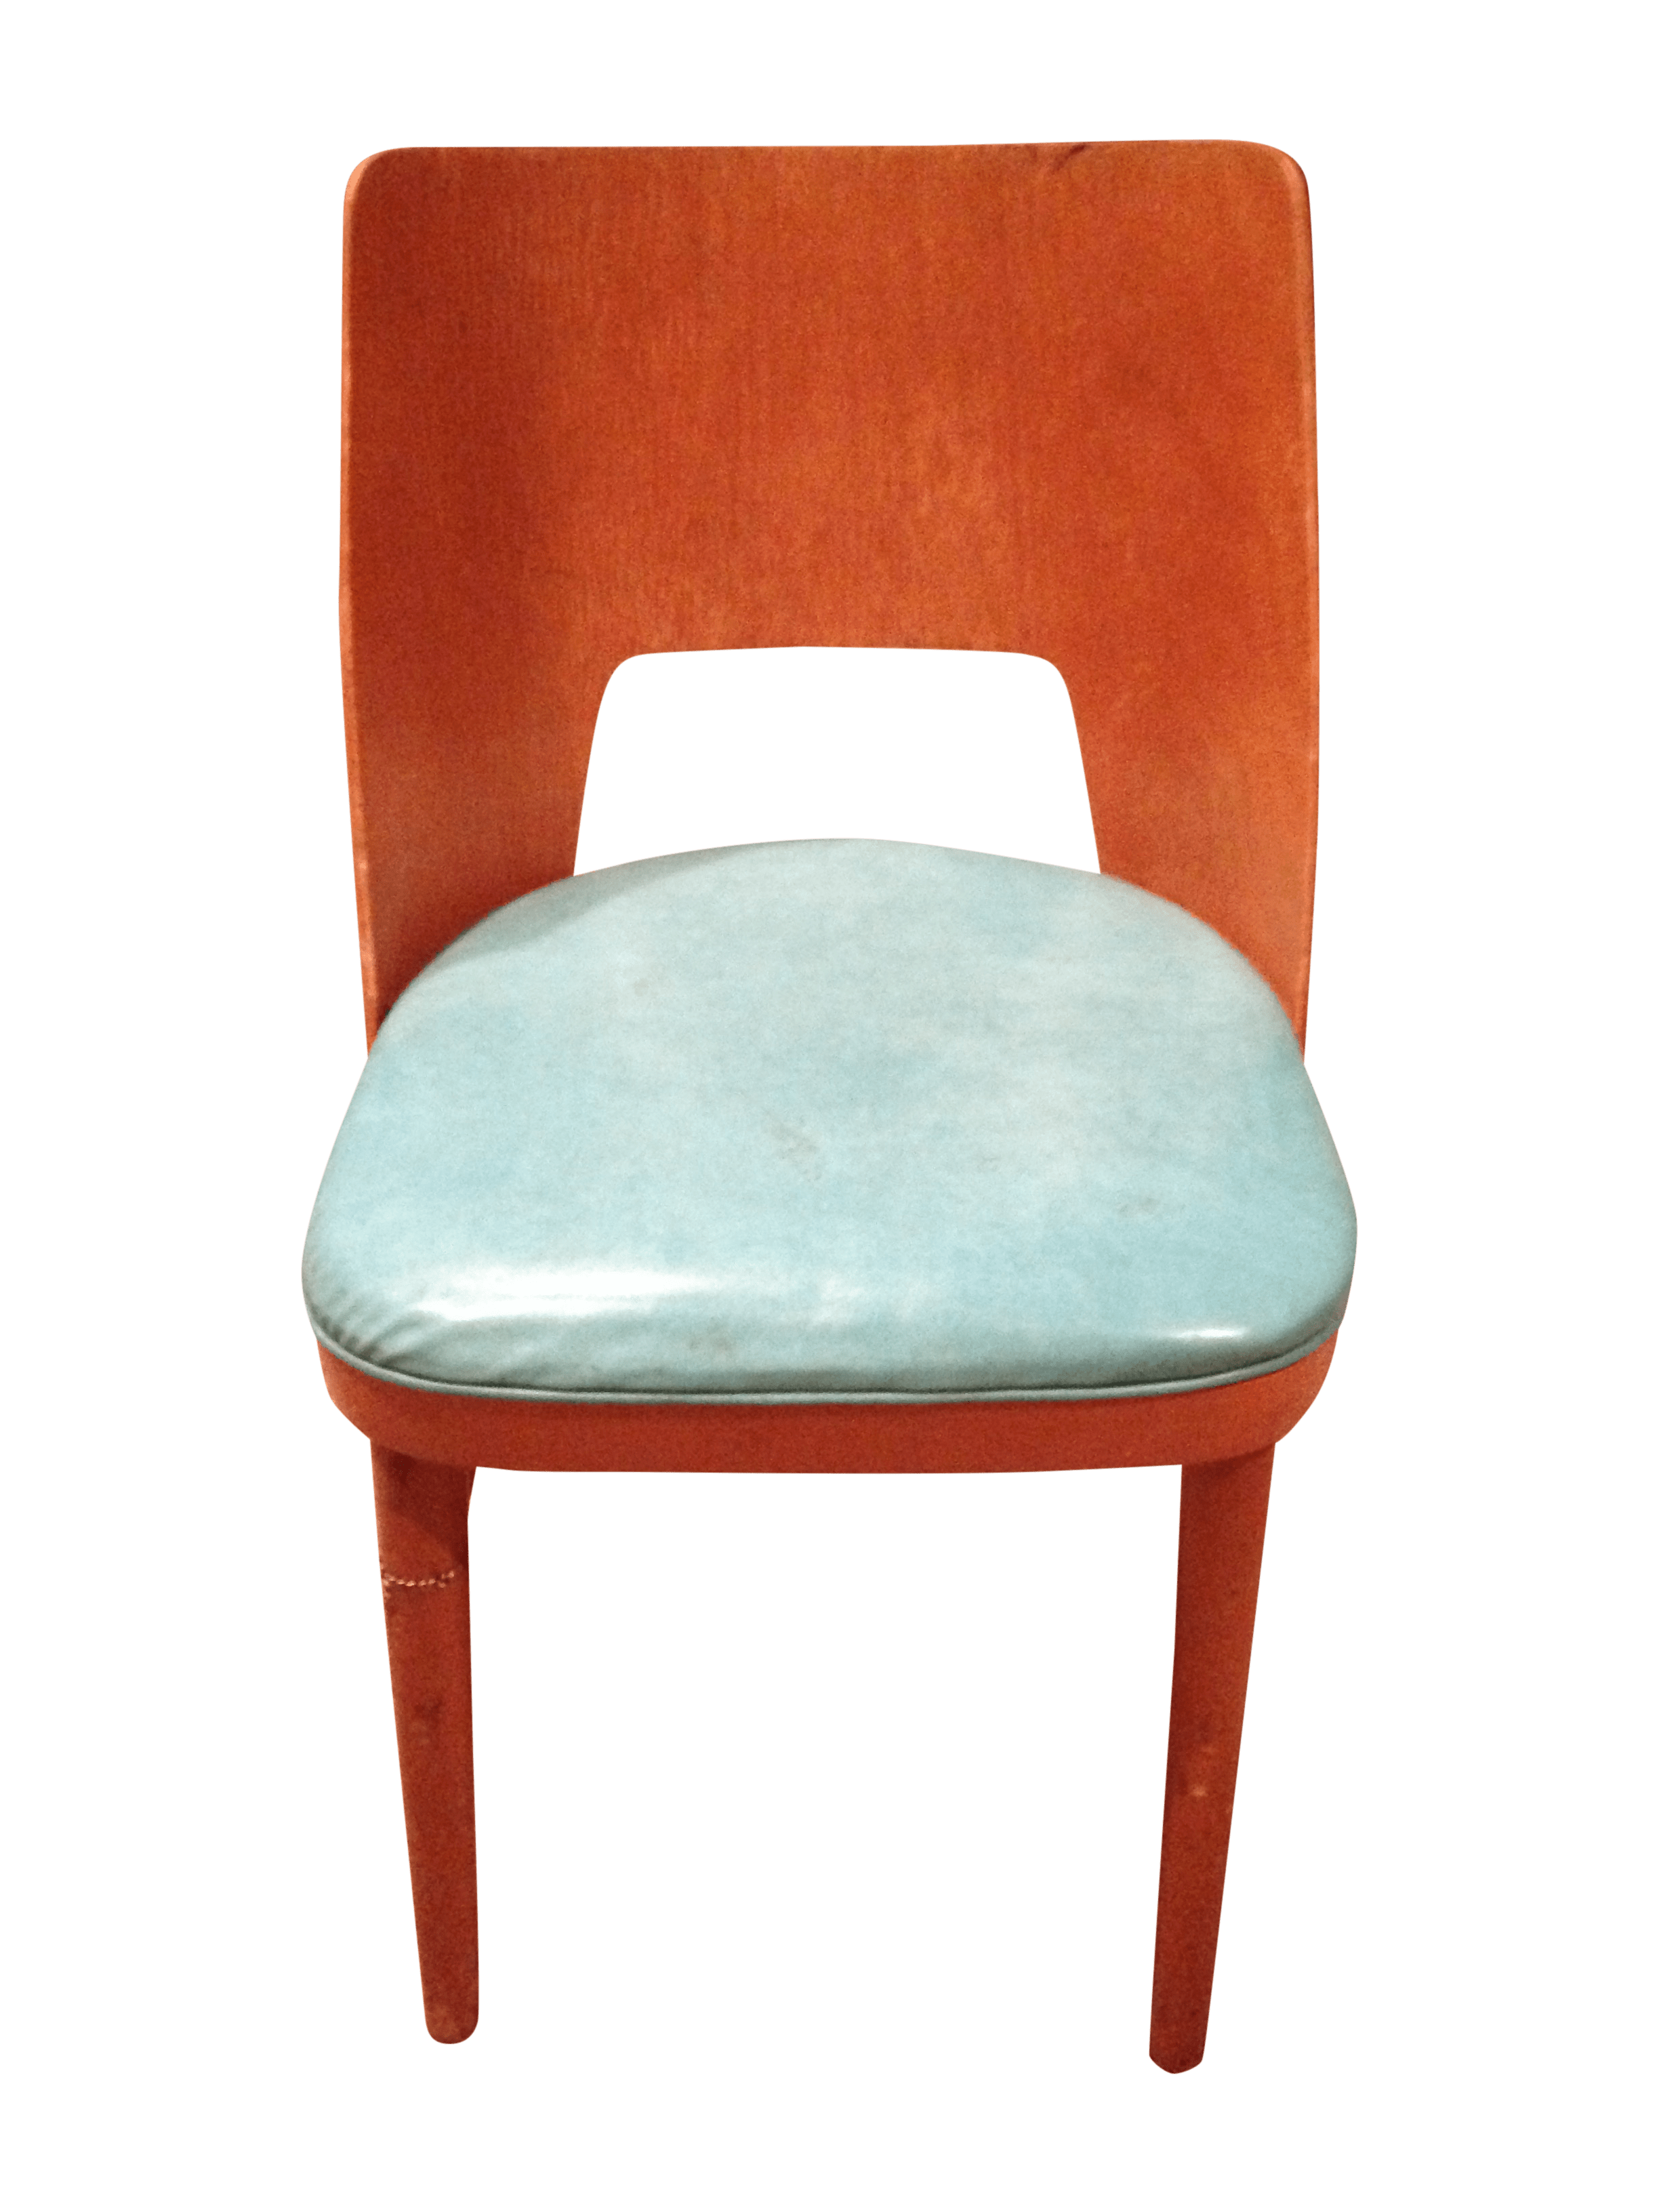 shelby williams chairs costco office in store bentwood chair chairish